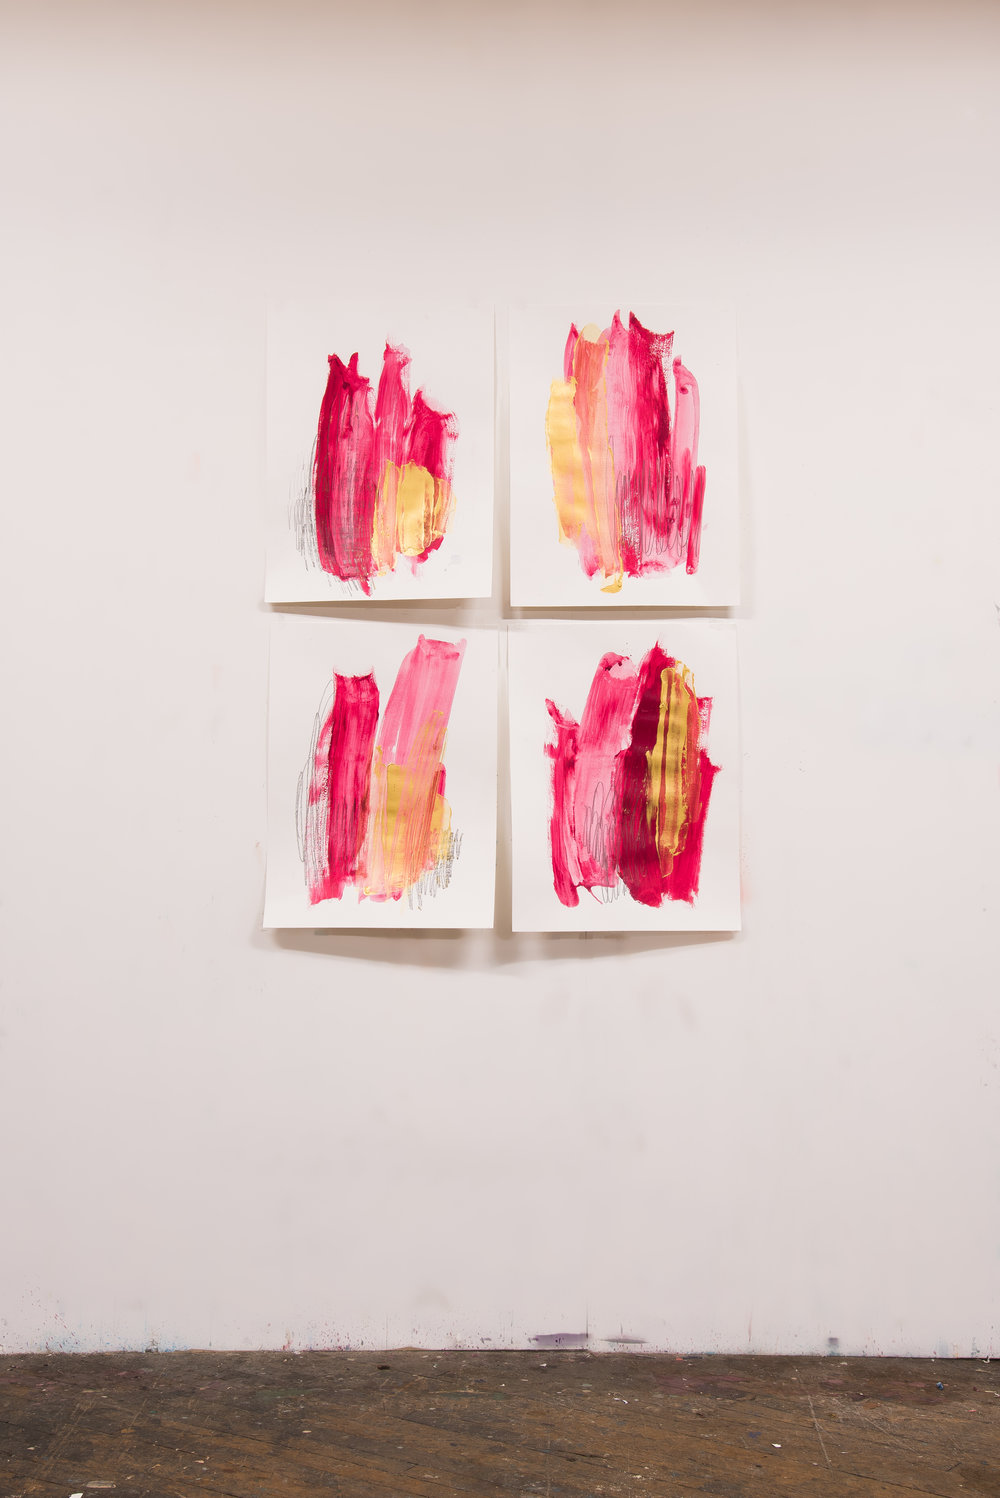 """So Fancy #1-4 , 18""""x24"""" each, acrylic + graphite on paper, 2018, #2-3 SOLD, #1 #4 available"""